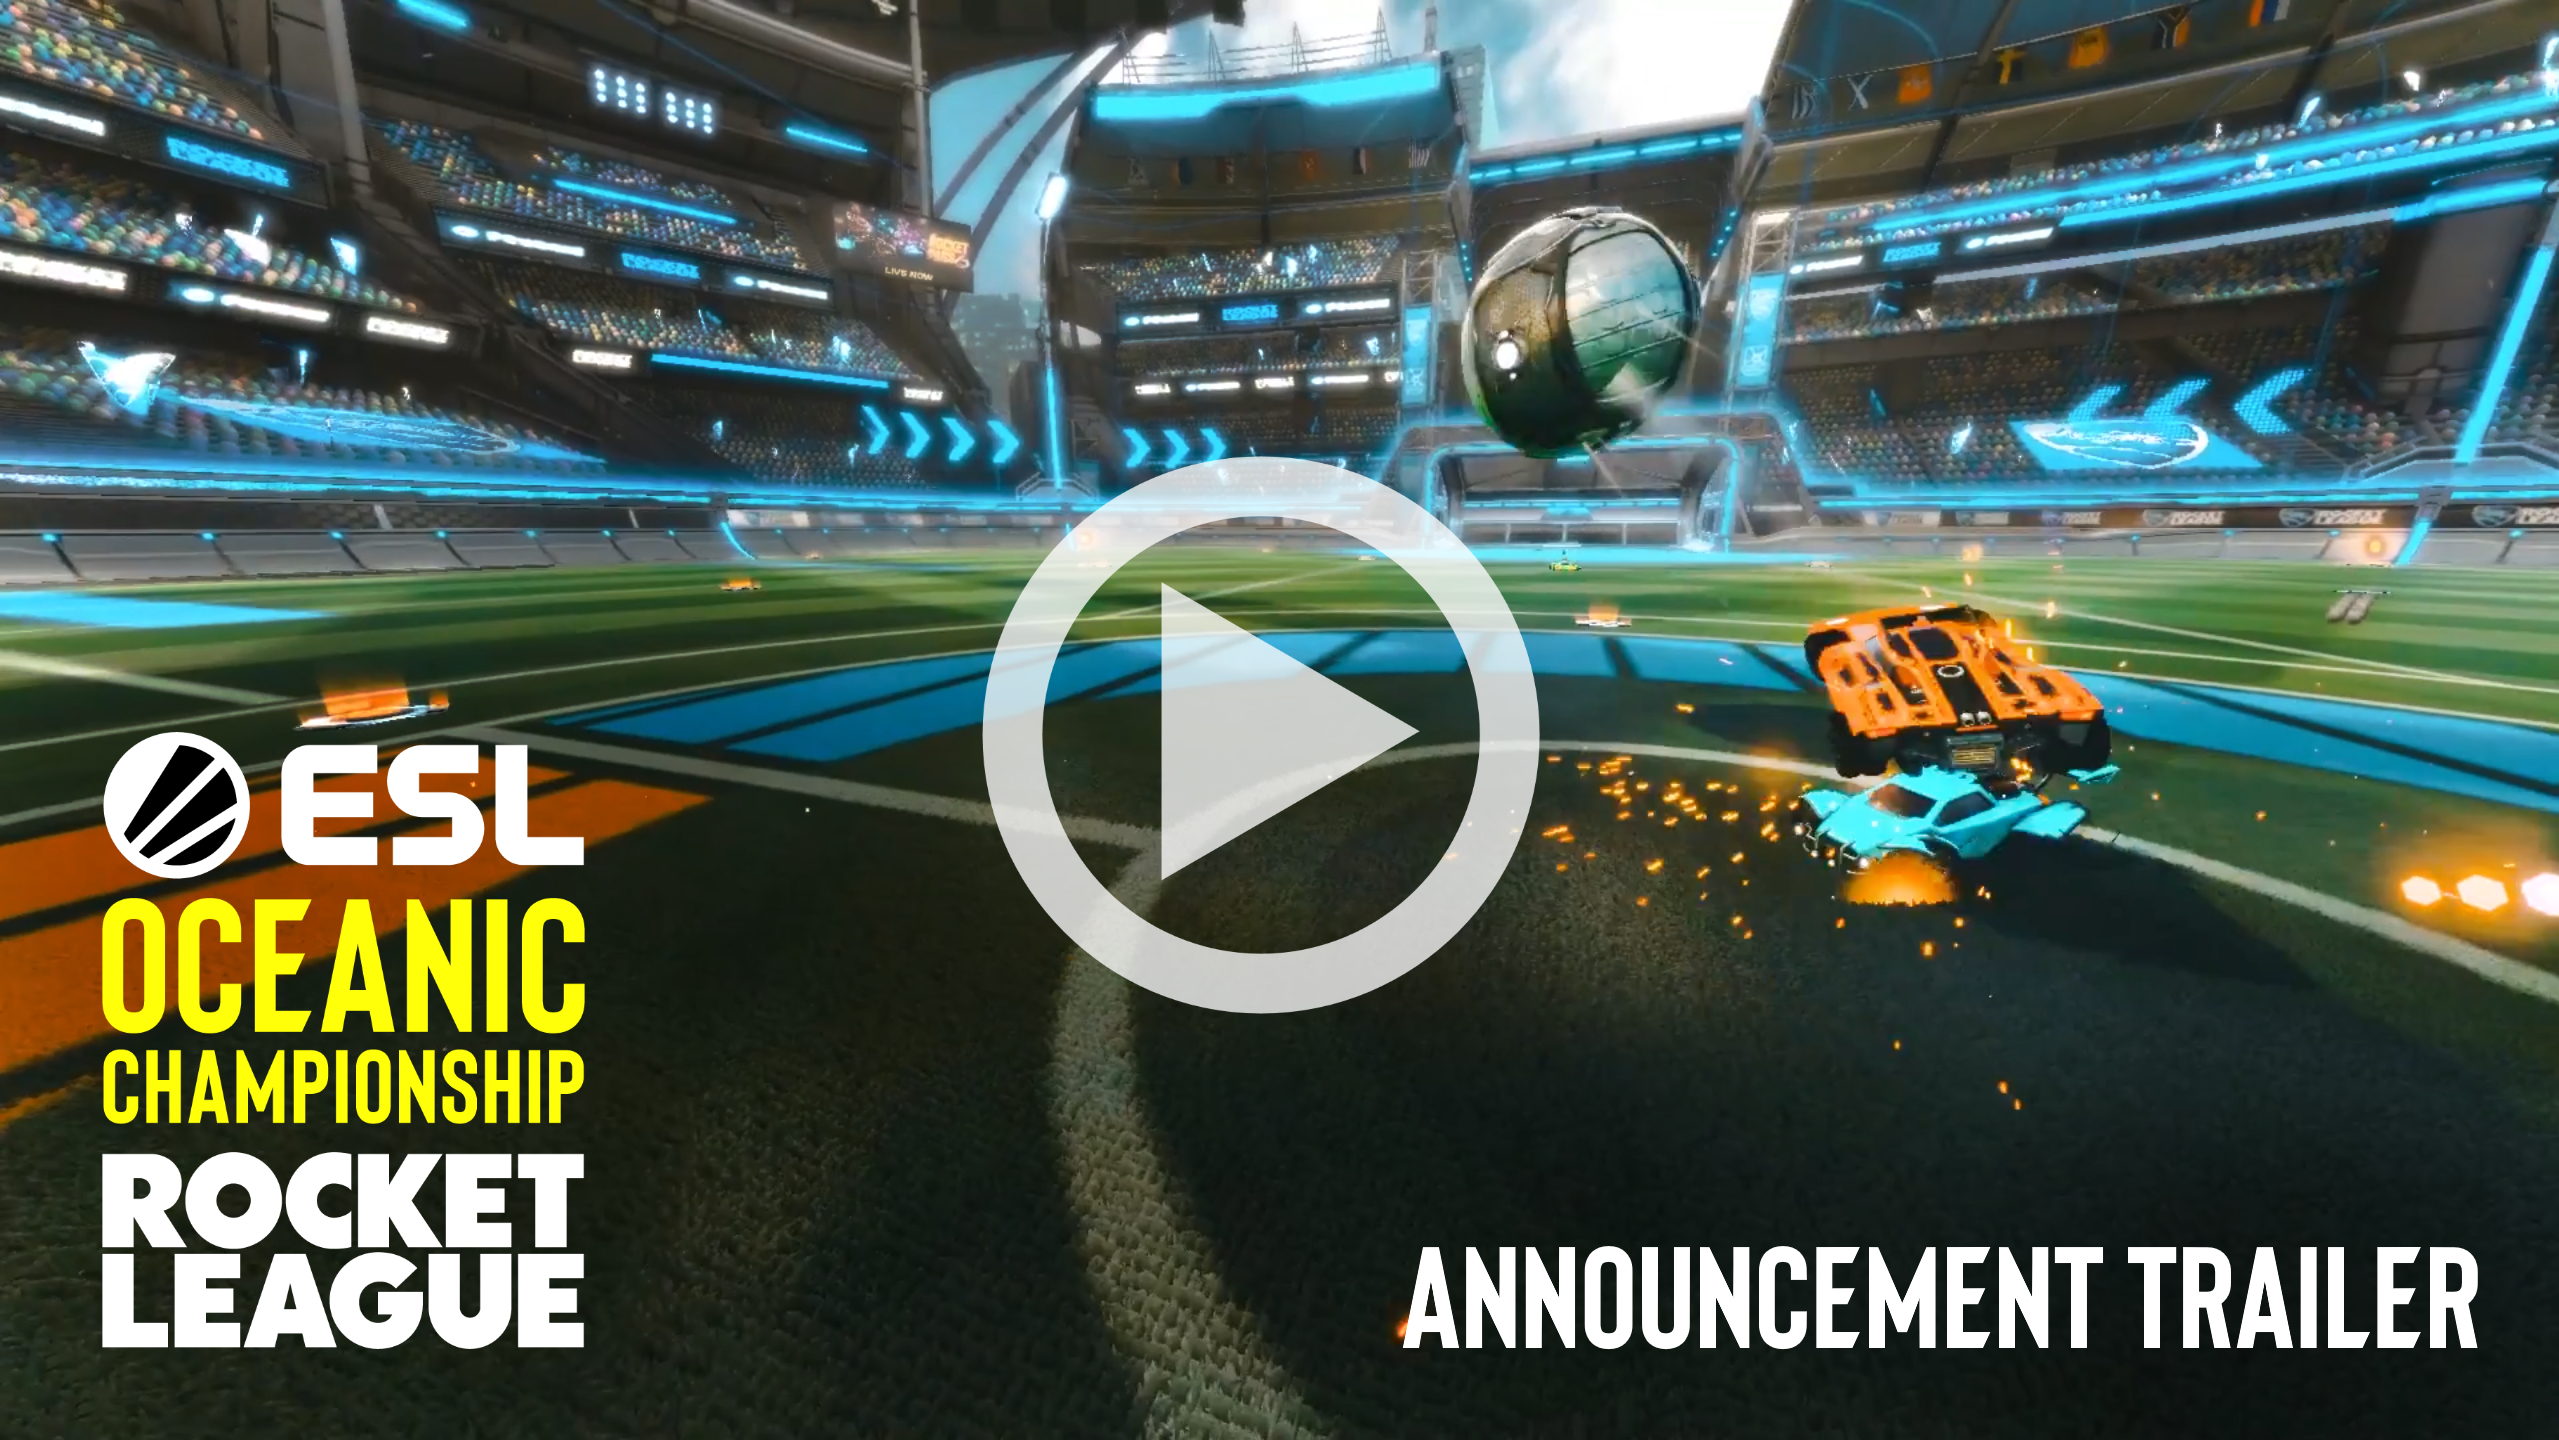 ESL Australia And Psyonix Partner For New $225,000 USD Rocket League Tournament